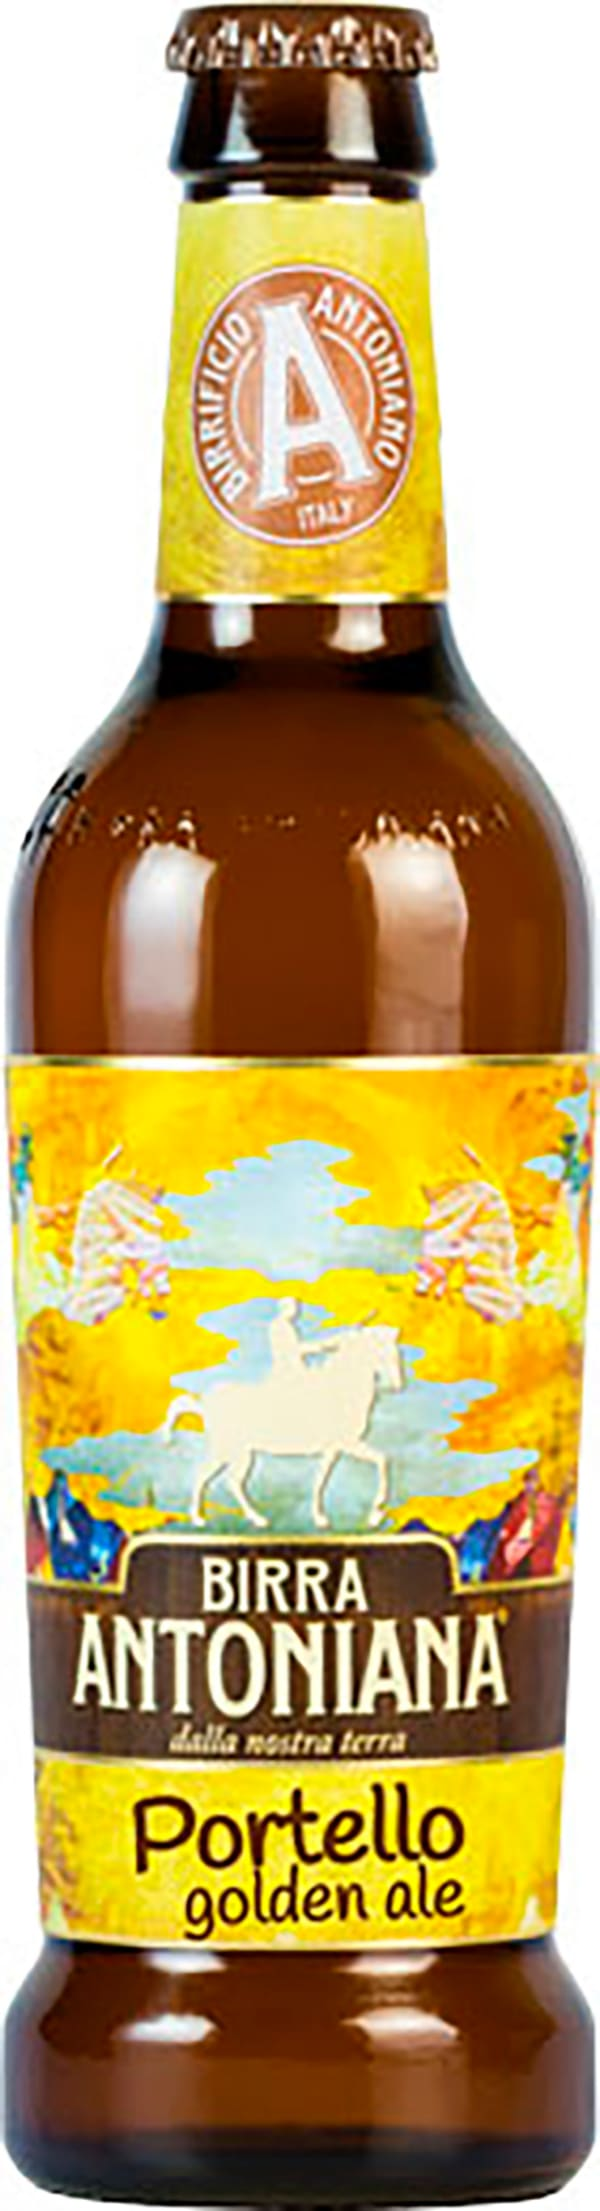 Birra Antoniana Portello Golden Ale